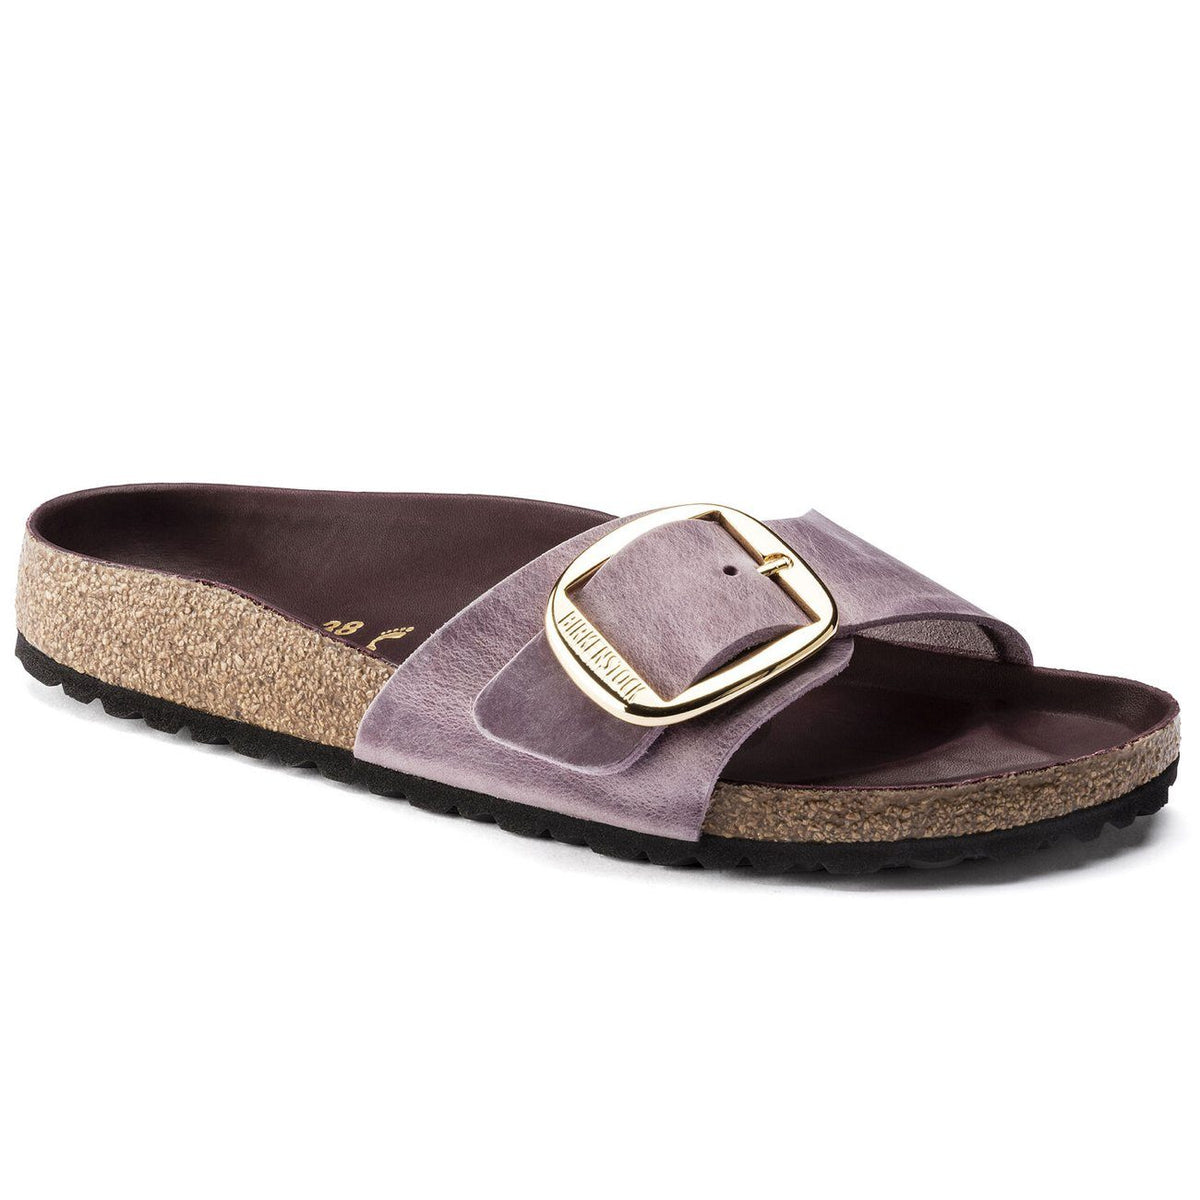 Birkenstock Seasonal, Madrid, Oiled Leather, Narrow Fit, Lavender Blush Sandals Birkenstock Seasonal Lavender Blush 35